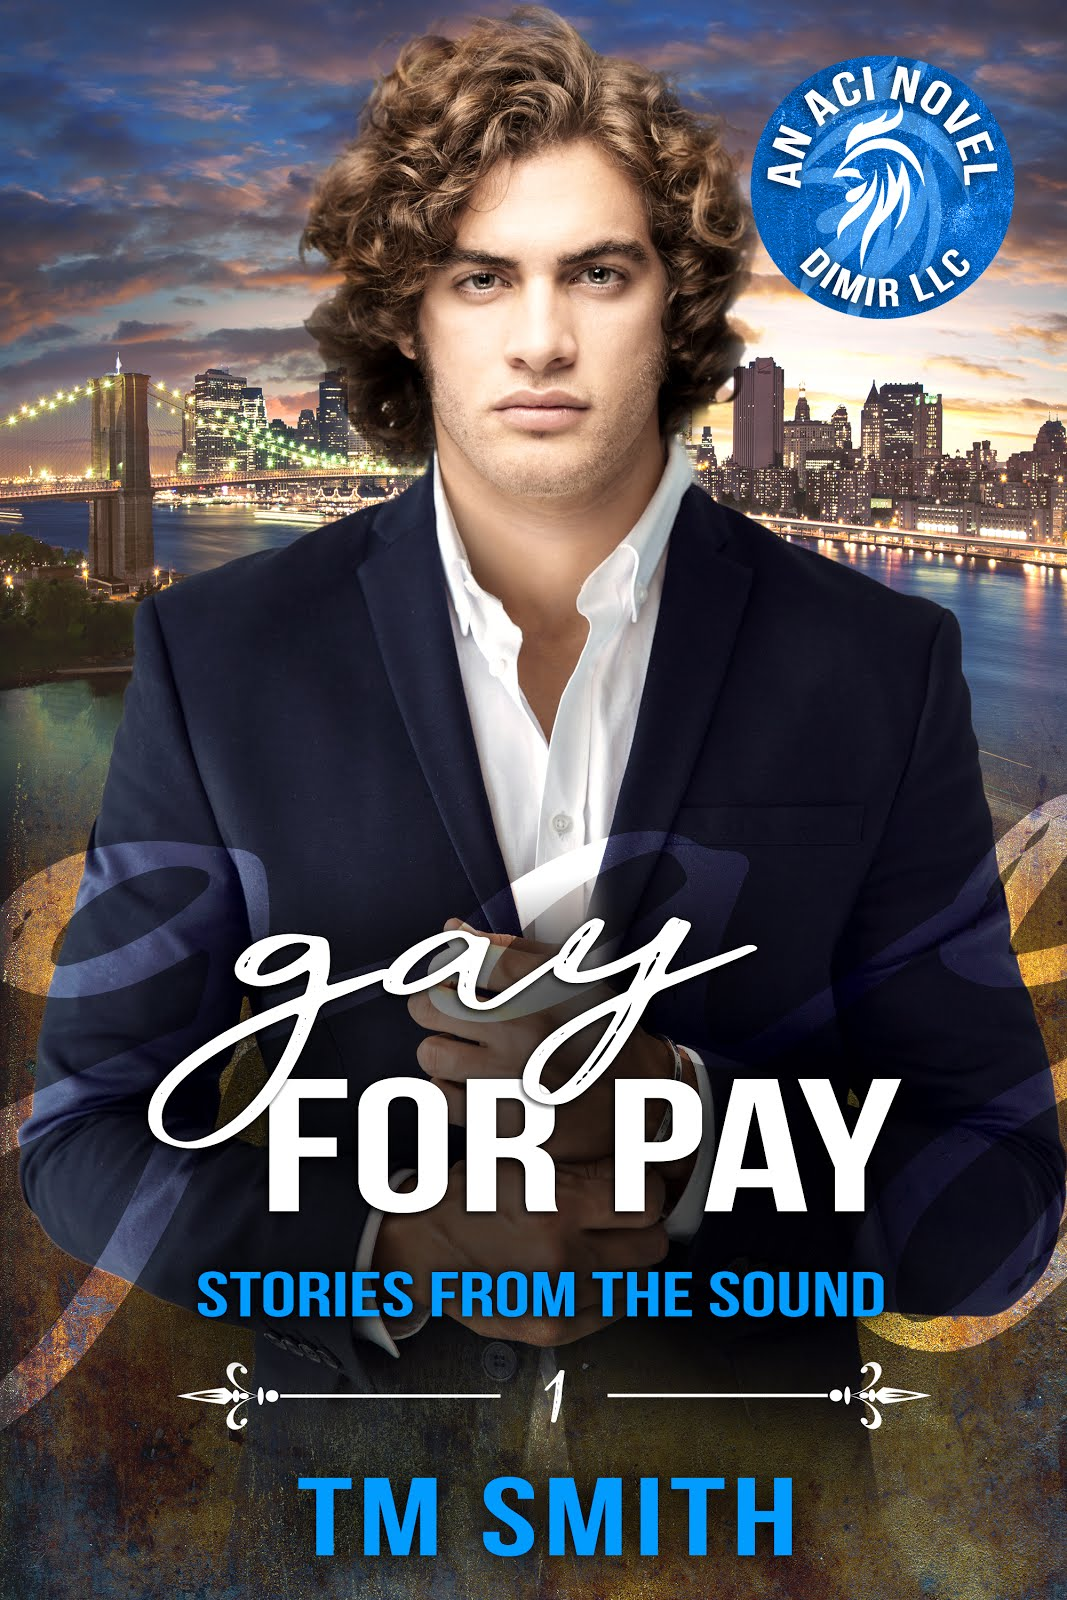 Gay for Pay (Stories from the Sound book 1) available now!